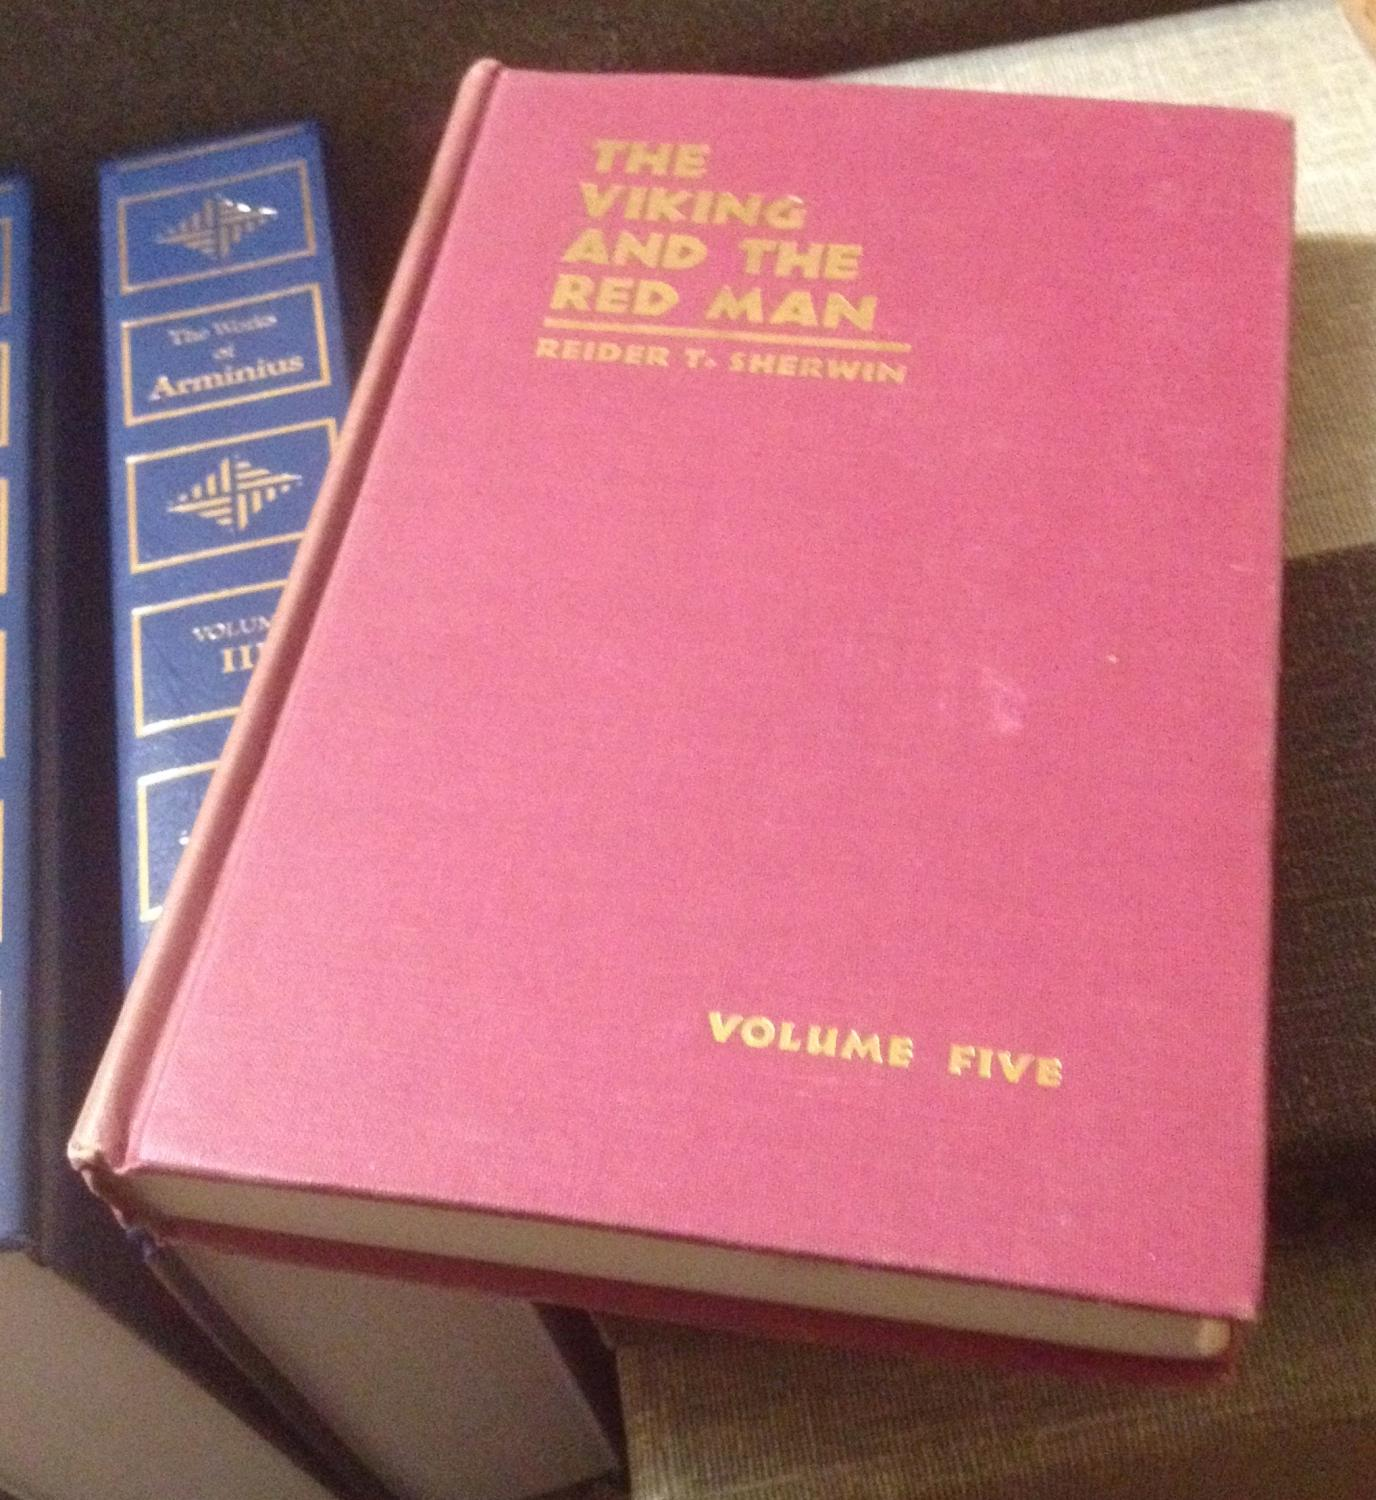 The Viking and the Red Man: The Old Norse Origin of the Algonquin Language Volume Five Sherwin, Reider T.